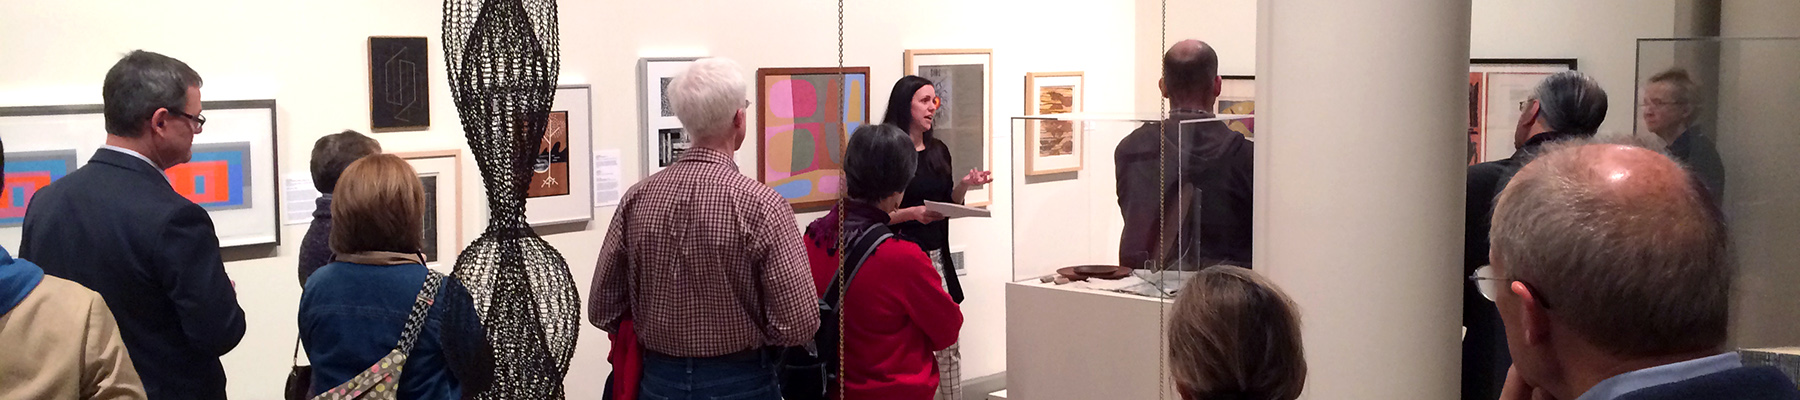 Winthrop University Galleries Educational Programs